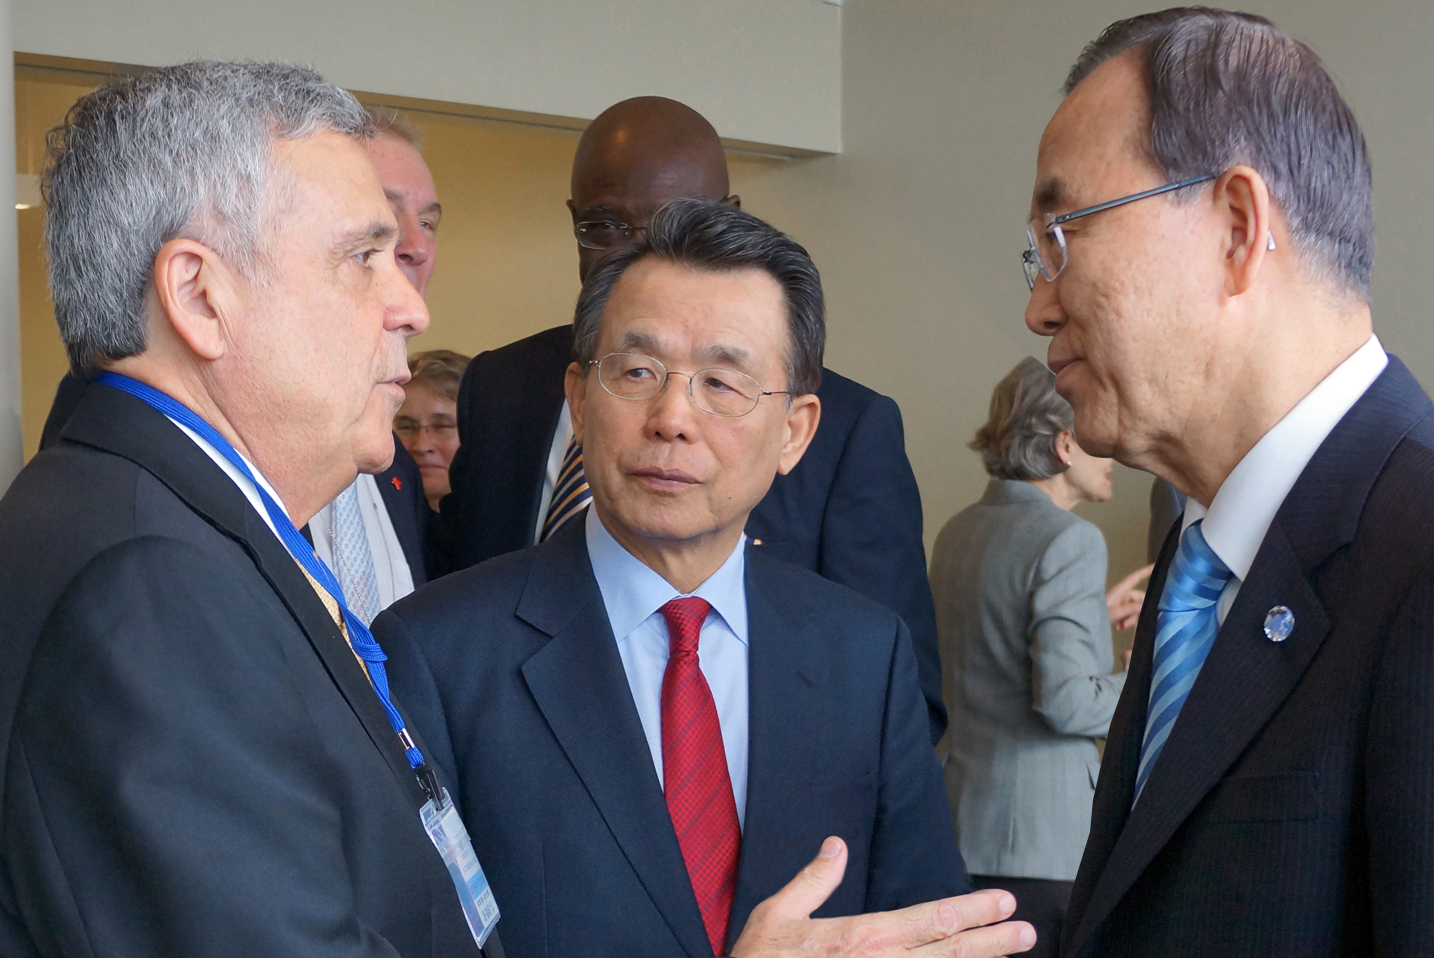 President Braga to the left together with UN Secretary-General H.E. Ban Ki-moon (right) and Dr. Han Seung-soo Founding Chair, High-Level Expert Panel on Water and Disaster/UNSGAB and Former Prime Minister of the Republic of Korea (middle).